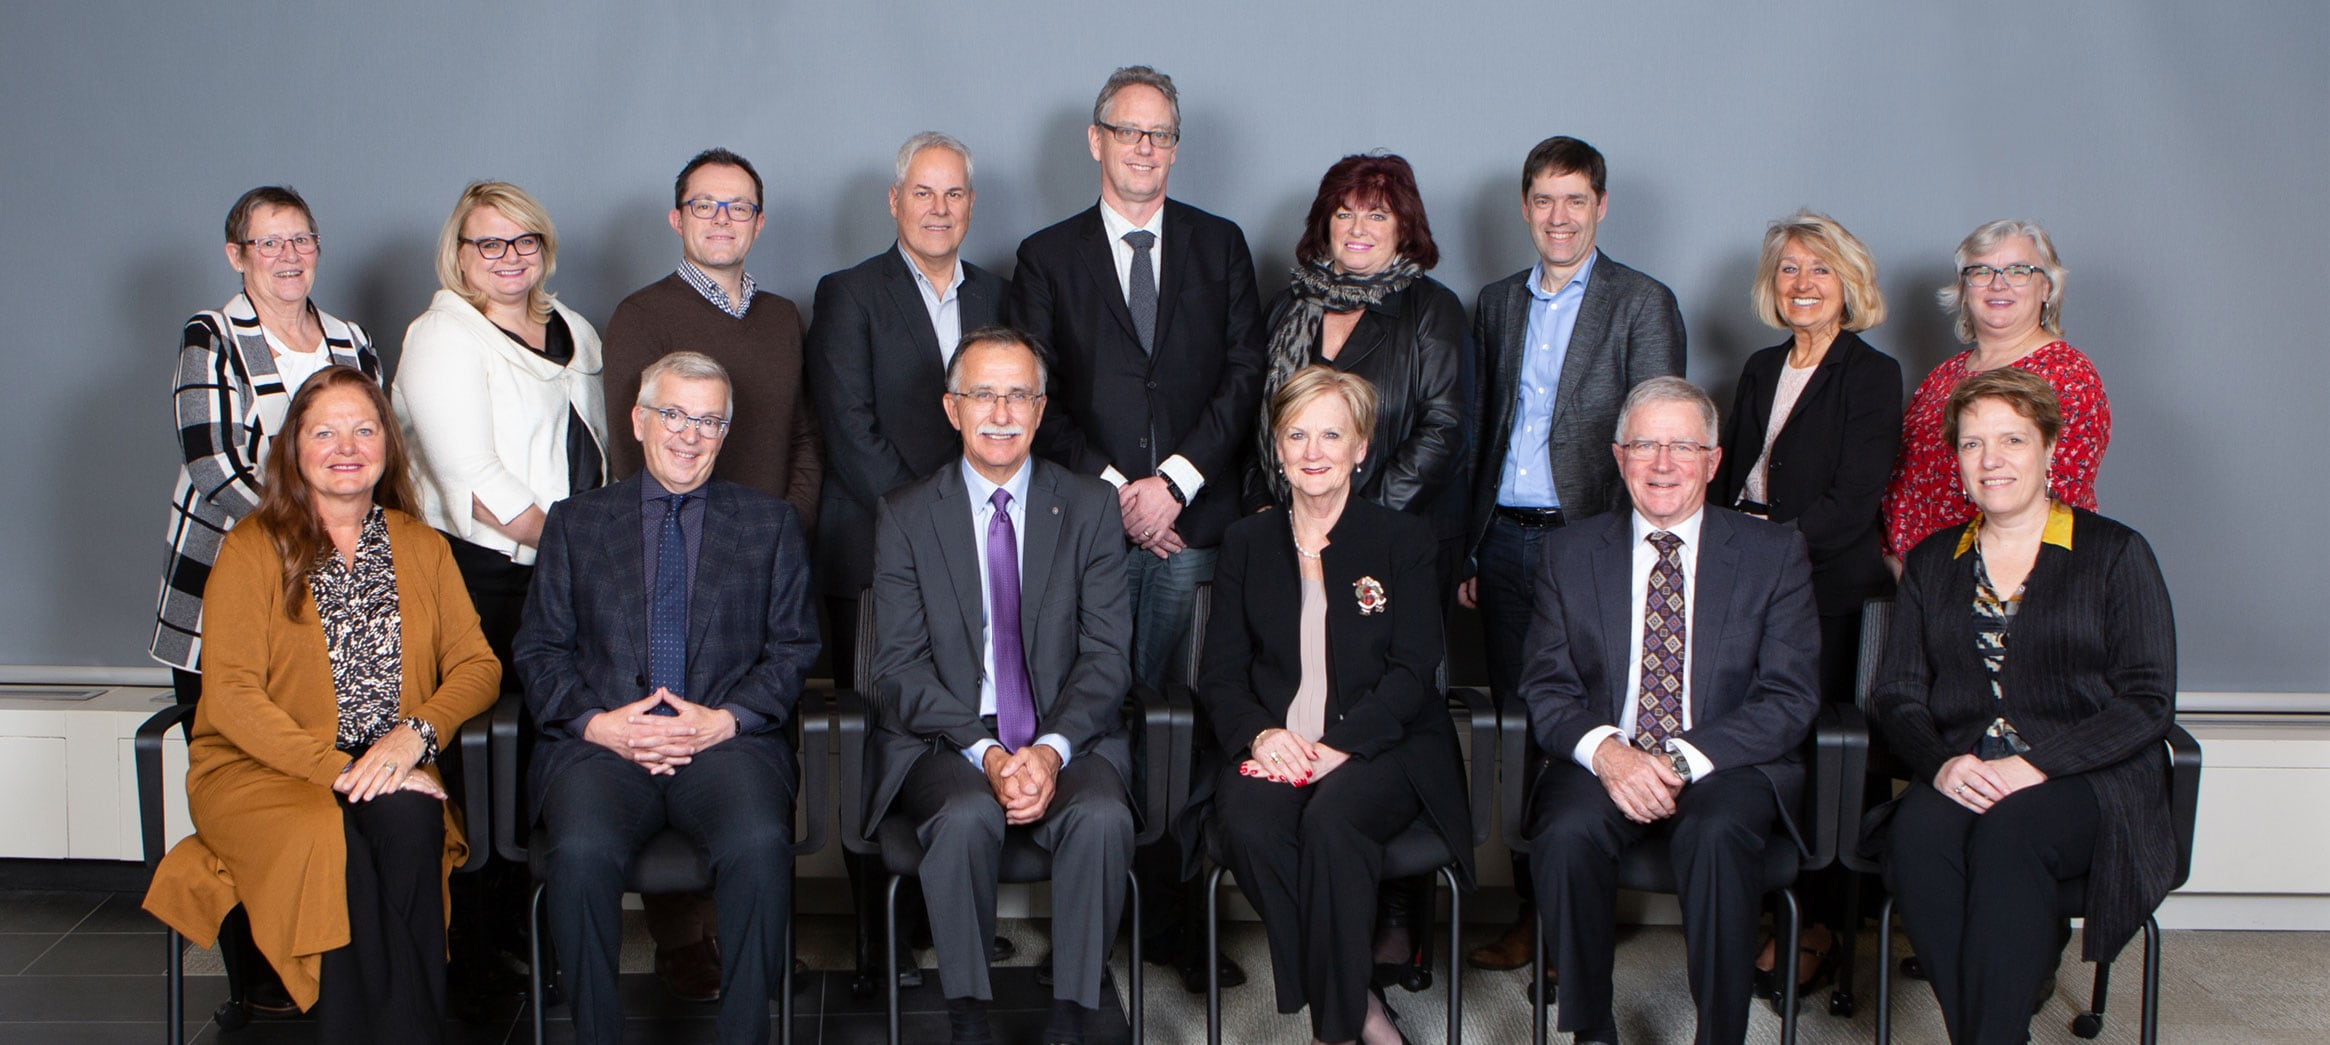 Canadian Patient Safety Institute Board of Directors (Left to right) Back row: Jeanette Edwards, Sue Owen, Dr. Chris Hayes, Claude Allard, Dr. Ian Rongve, Avis Gray, Marcel Saulnier, Dr. Irmajean Bajnok, and Jo-Anne Cecchetto. Front row: L. Martina Munden, Dr. Blair O'Neill , Ronald Guse (Chair), Chris Power (CEO), Dr. Brian Wheelock, and Hélène Vaillancourt. Missing from the photo: Allison Costello and Dean Skrepnek